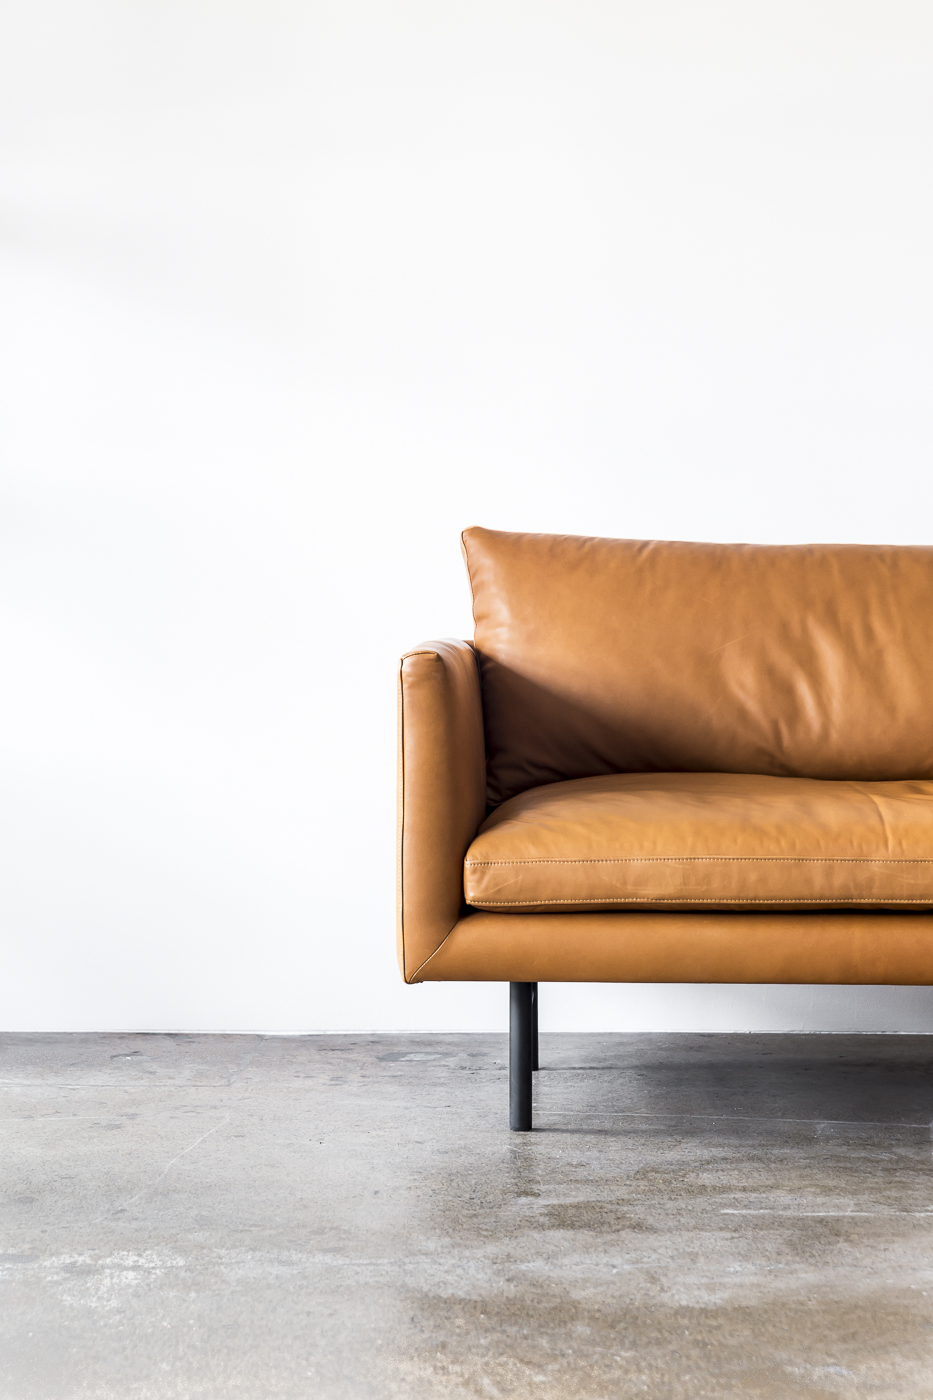 Louis_Sofa_Ranchero_Half_Staple&Co_Project82.jpg